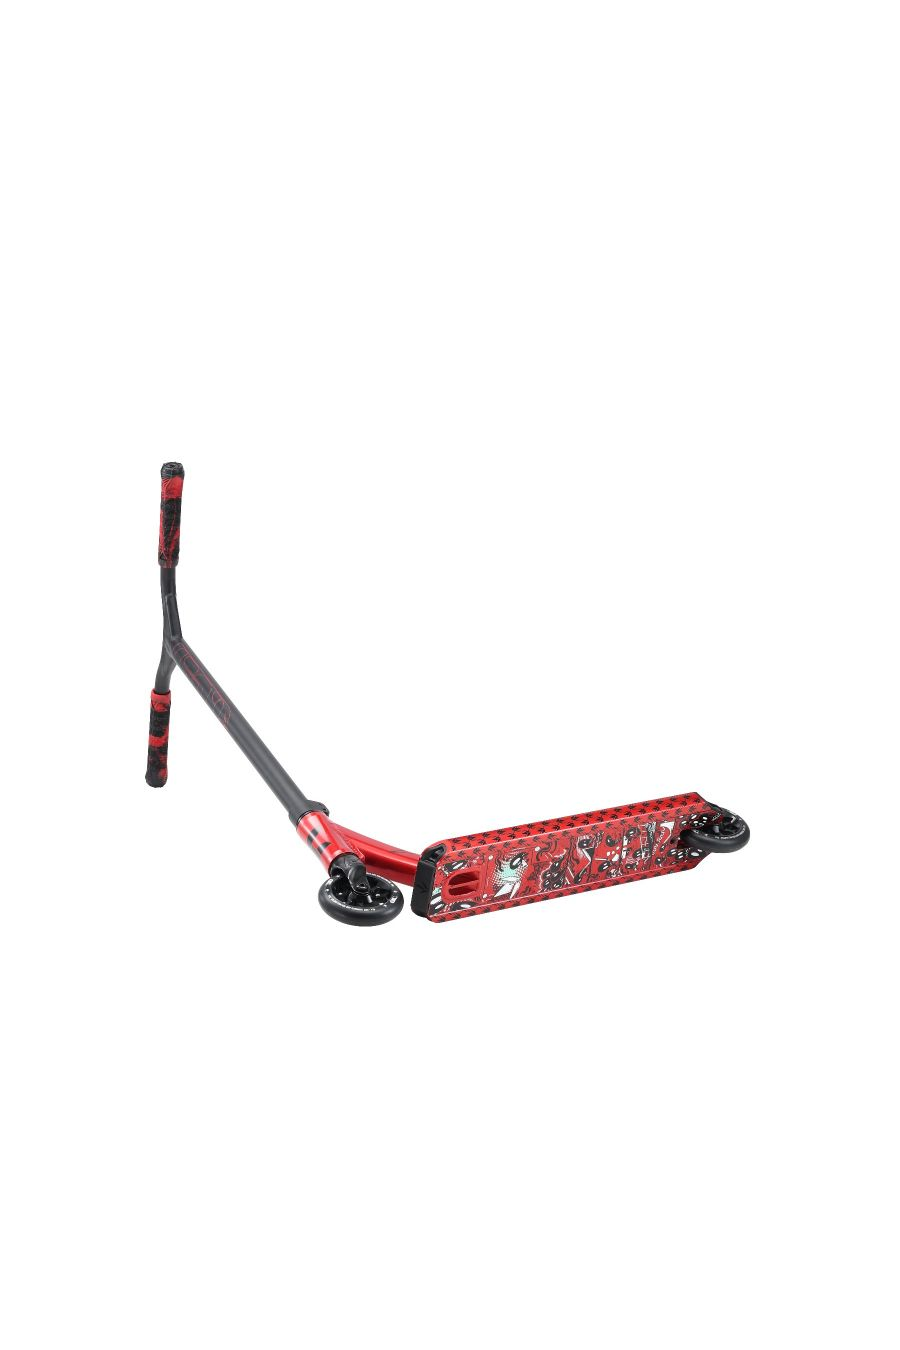 Envy Colt S4 Complete Scooter (Red) Pre-Order